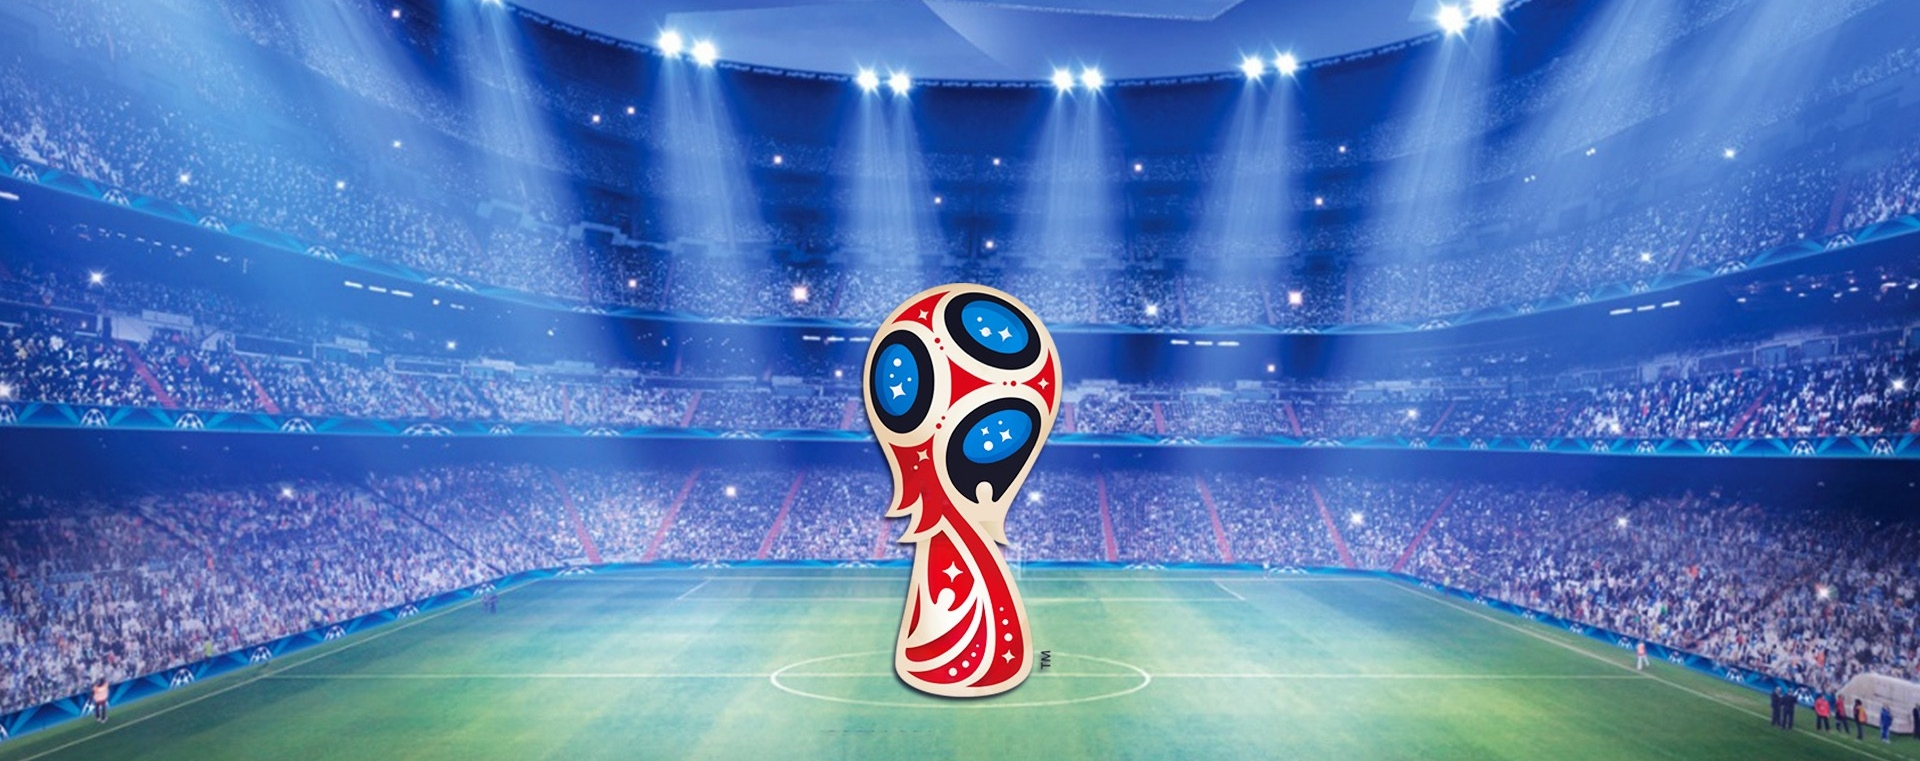 2018-FIFA-World-Cup-Trophy-Wallpapers-34010.jpg